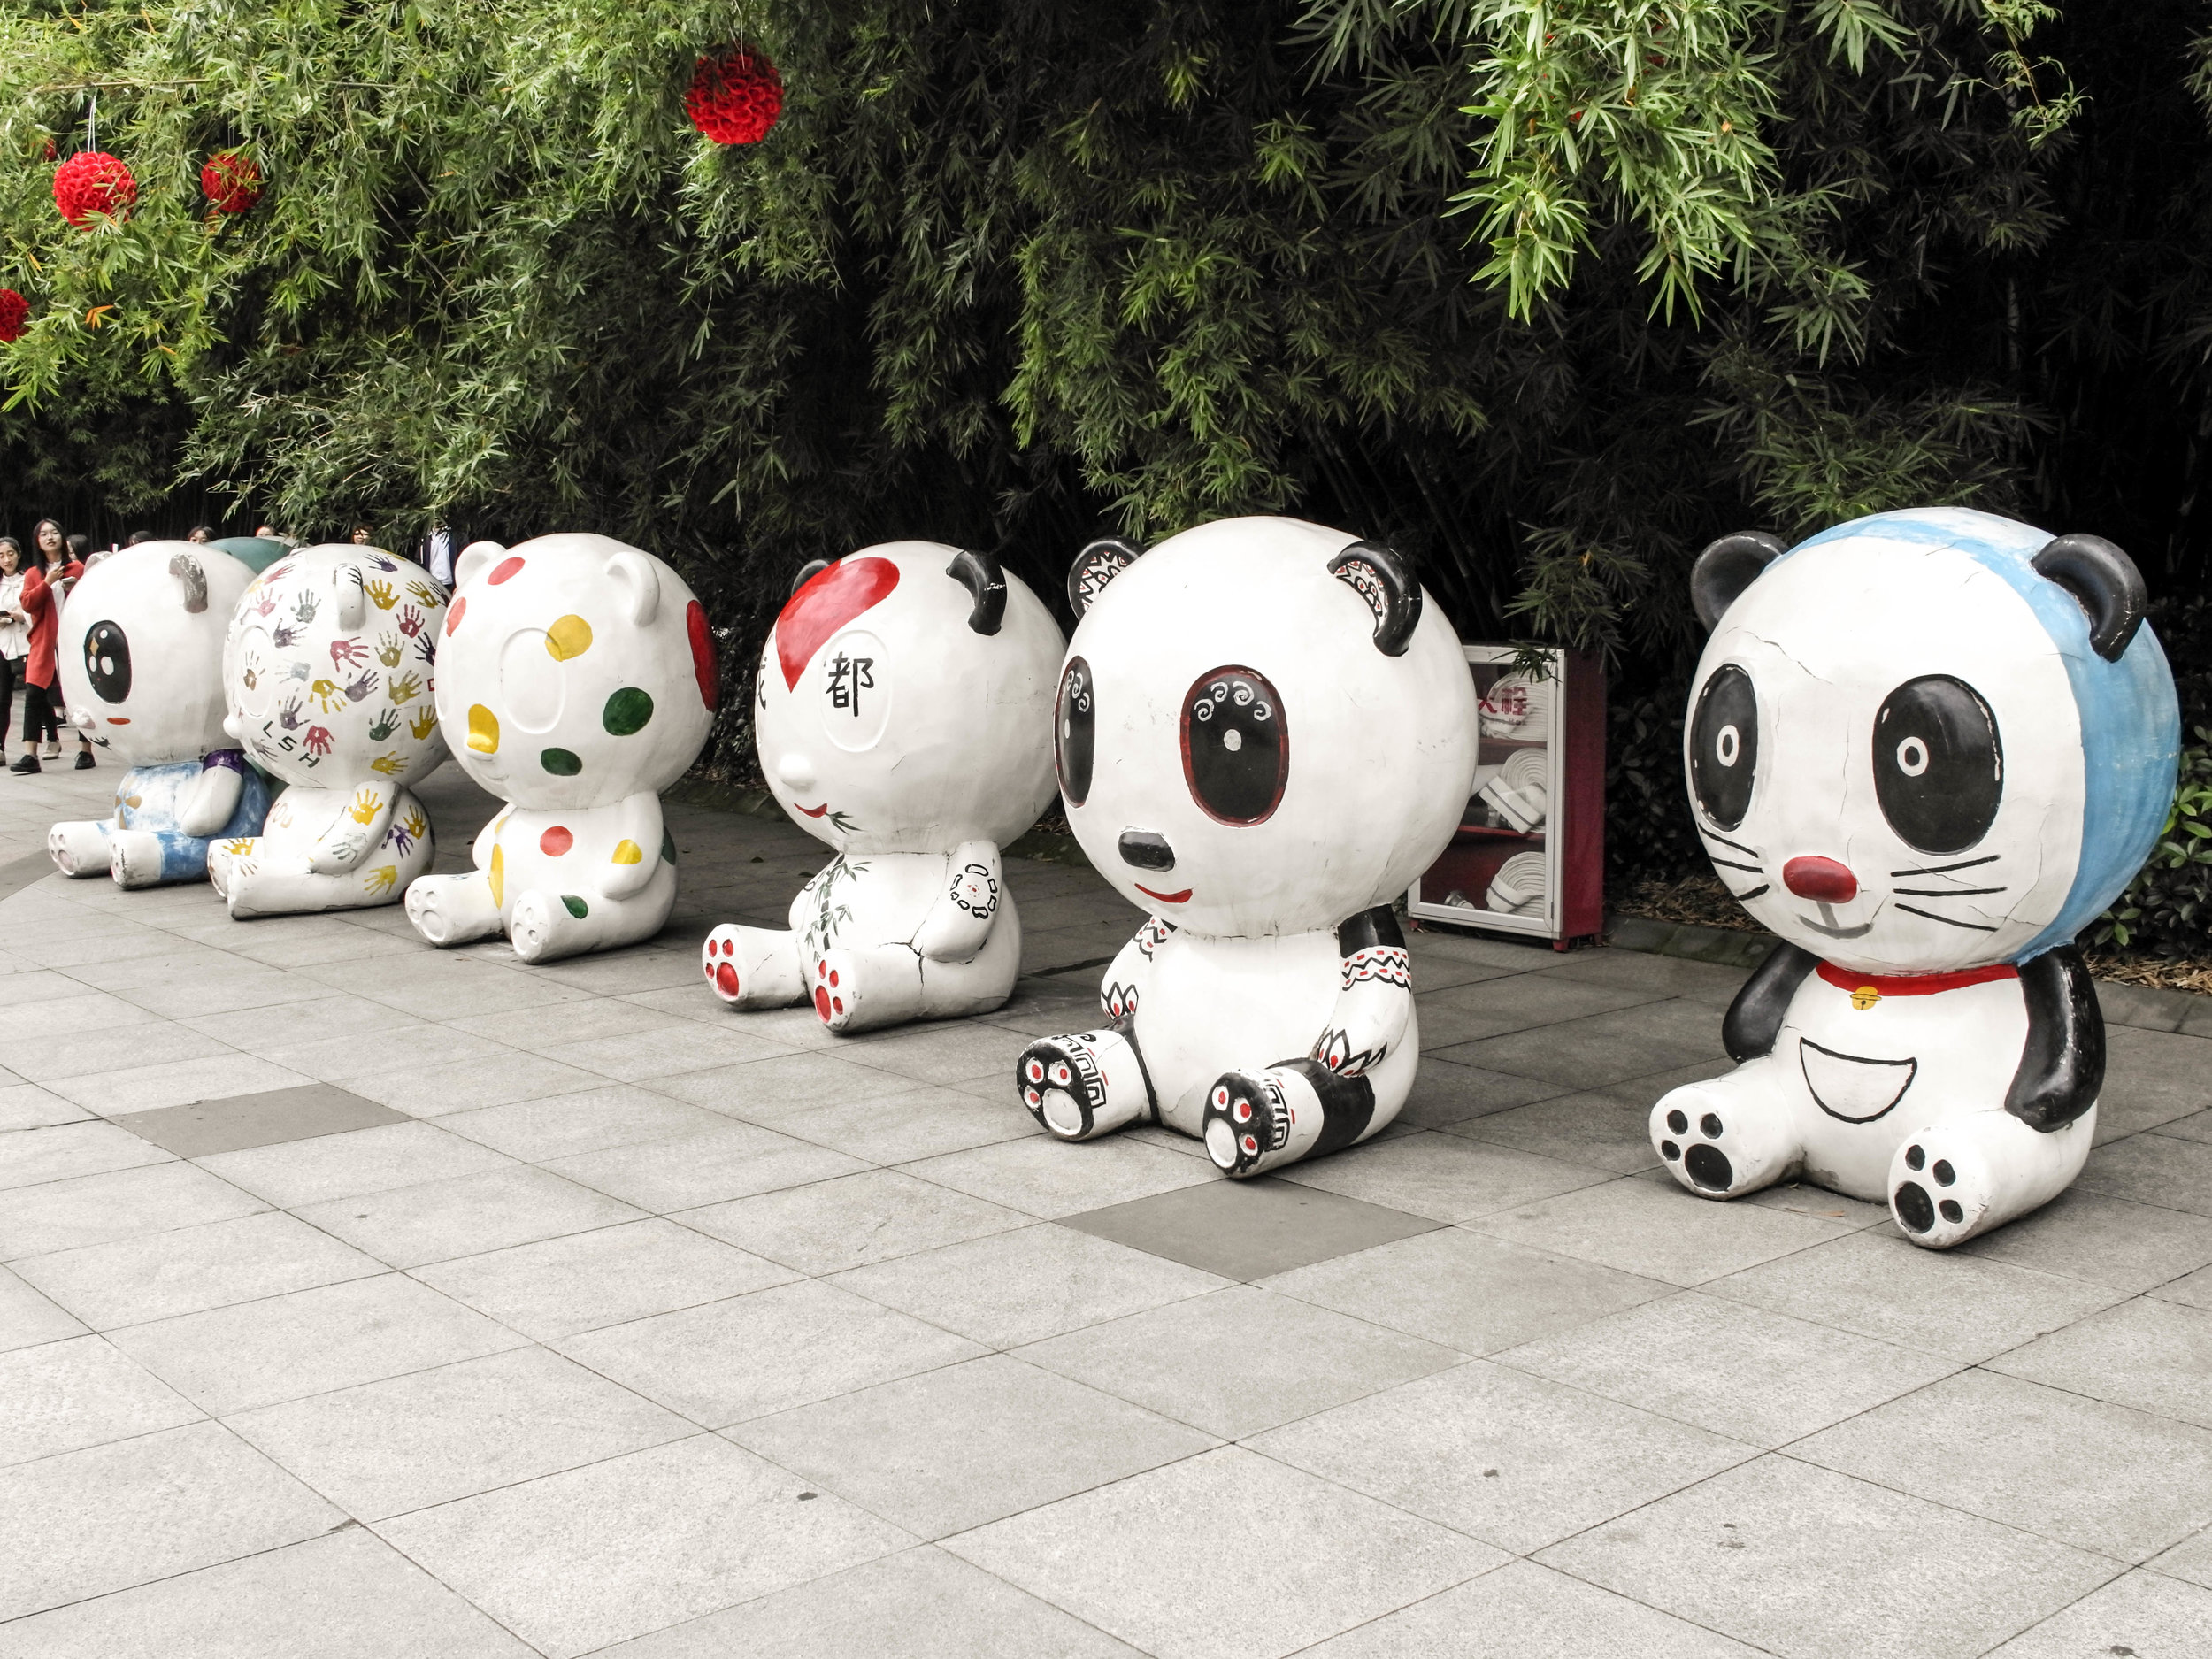 6. Chengdu, A Panda Lover's Destination -